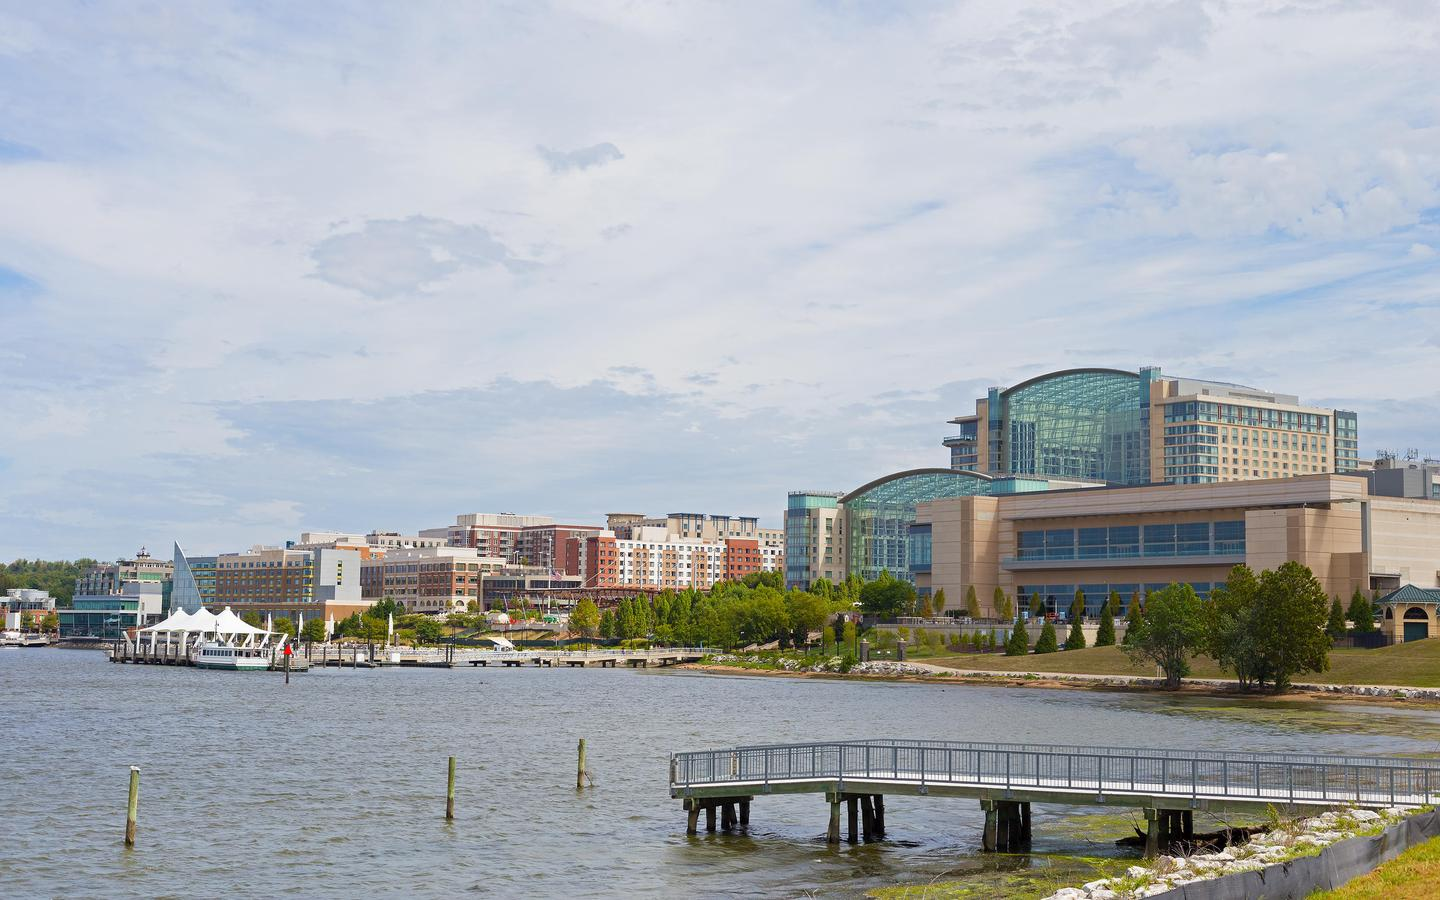 20 Best Hotels in National Harbor  Hotels from $138/night